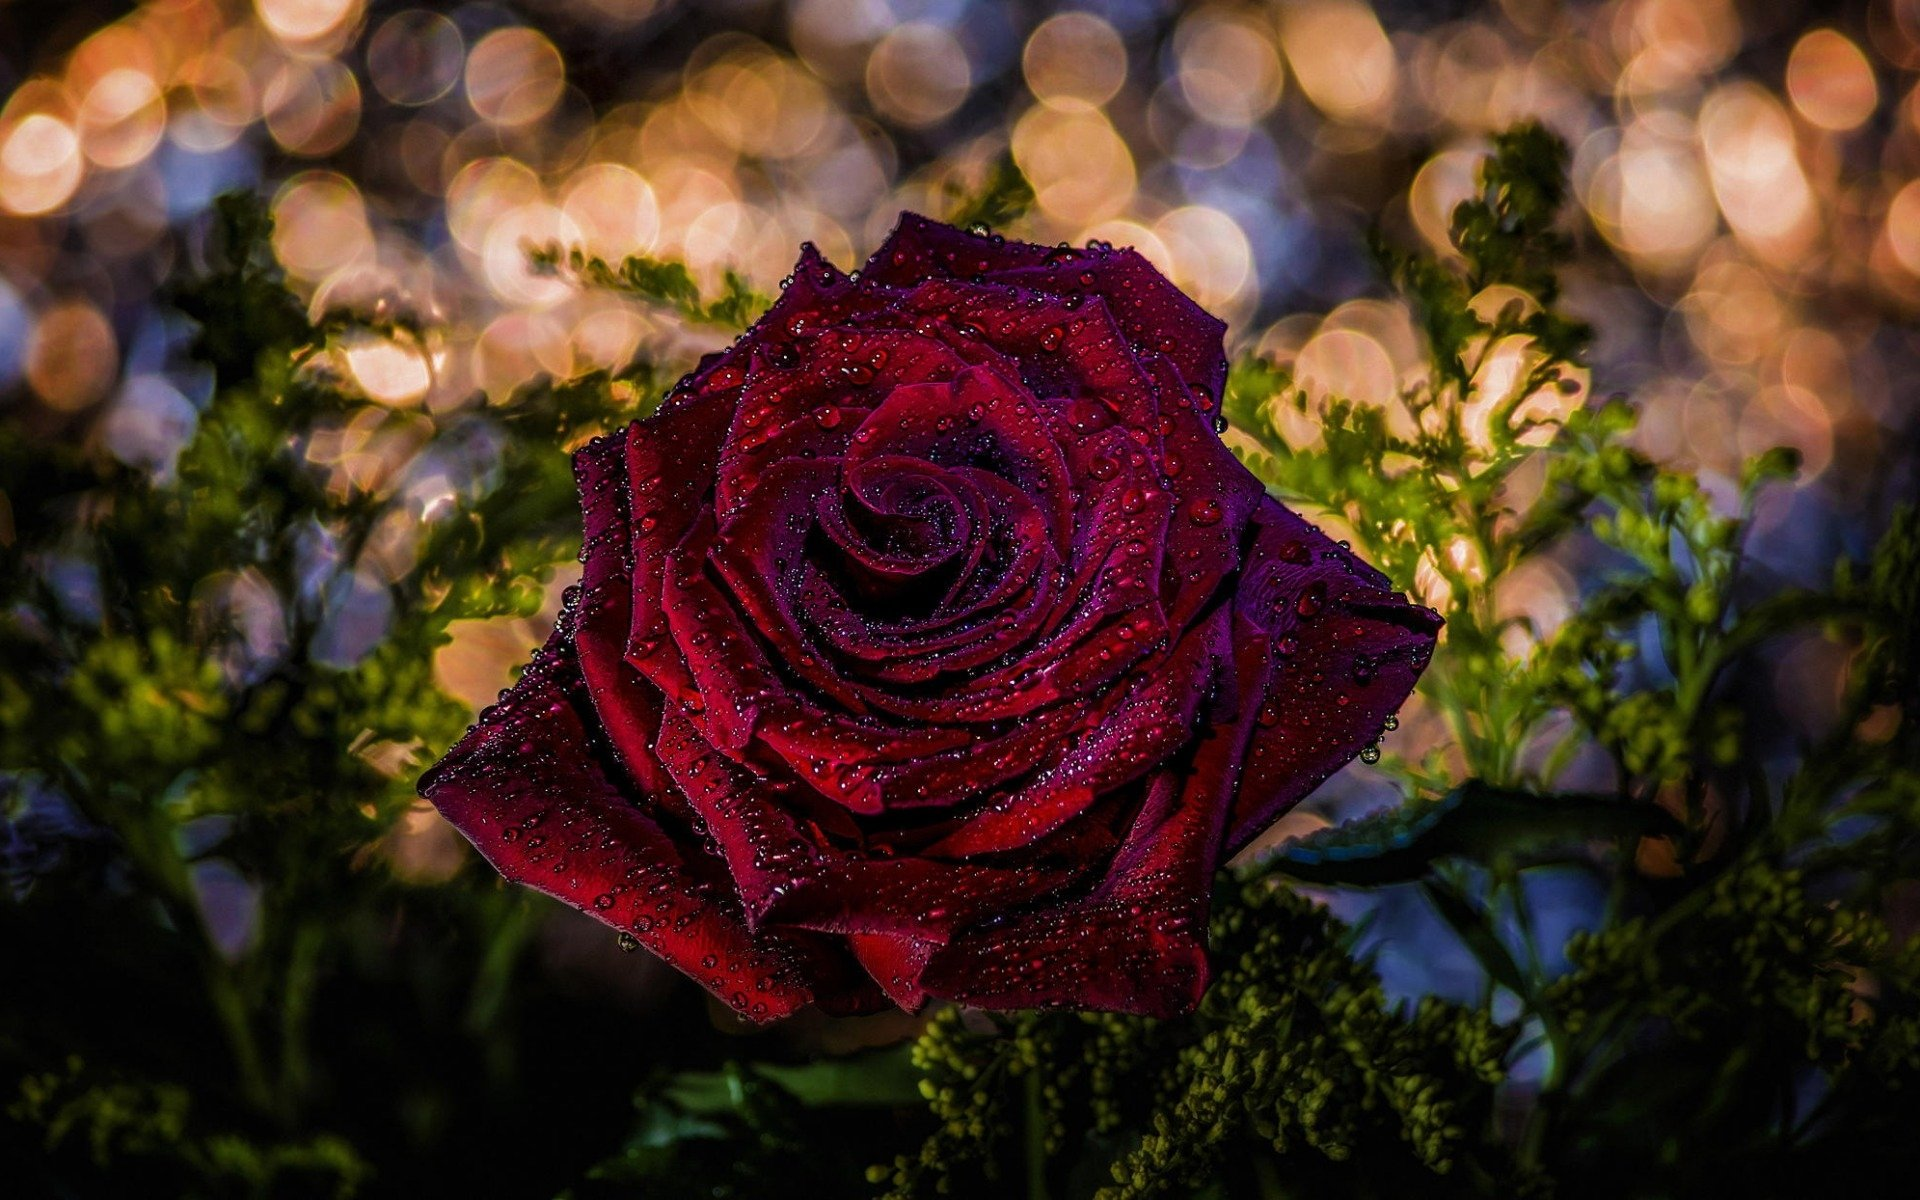 Earth - Rose Red Flower Bokeh Earth Red Rose Close-Up Wallpaper